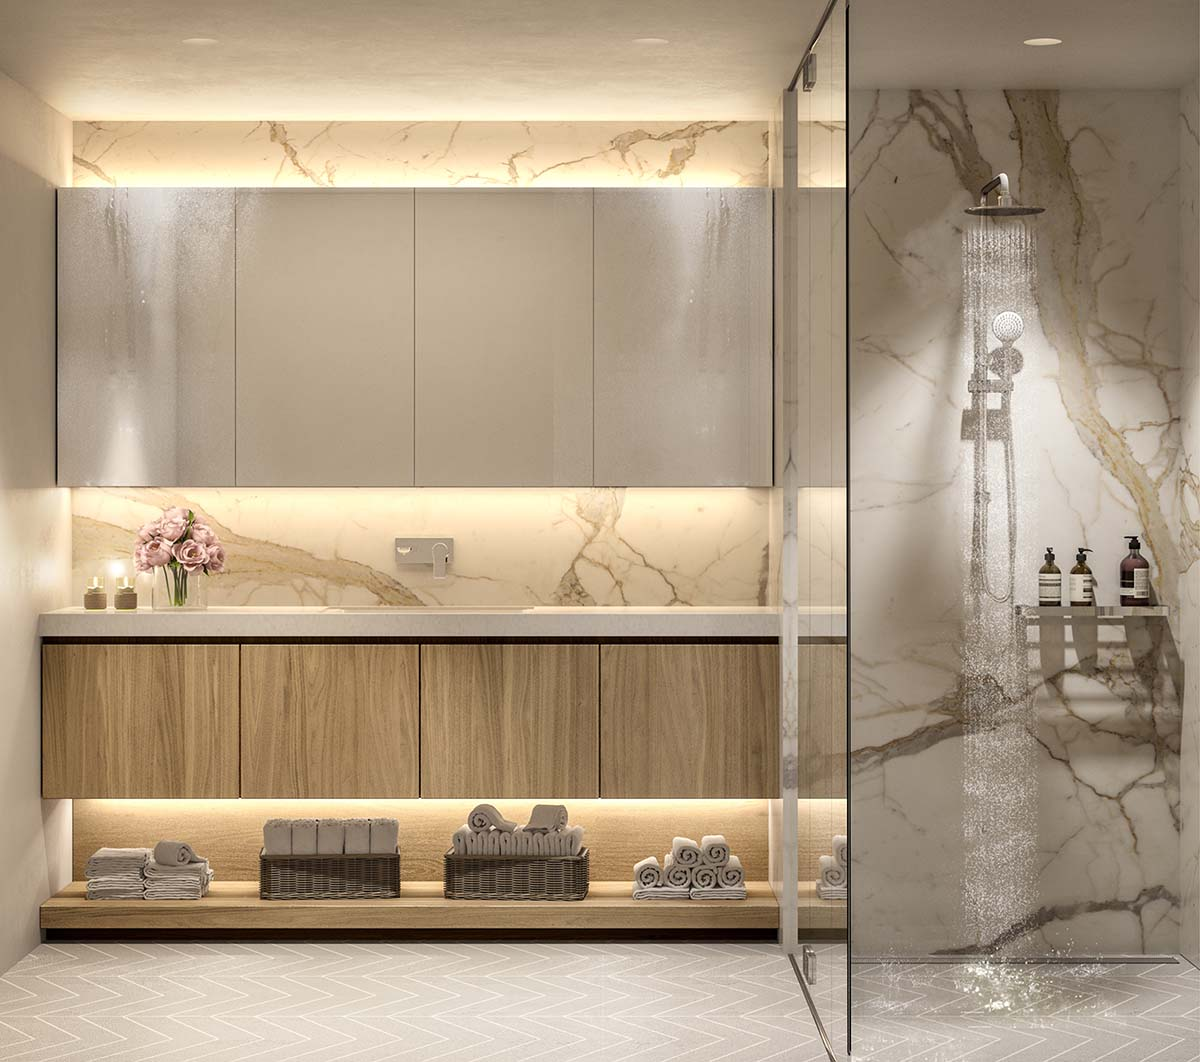 Bathroom design with shower and marble wall